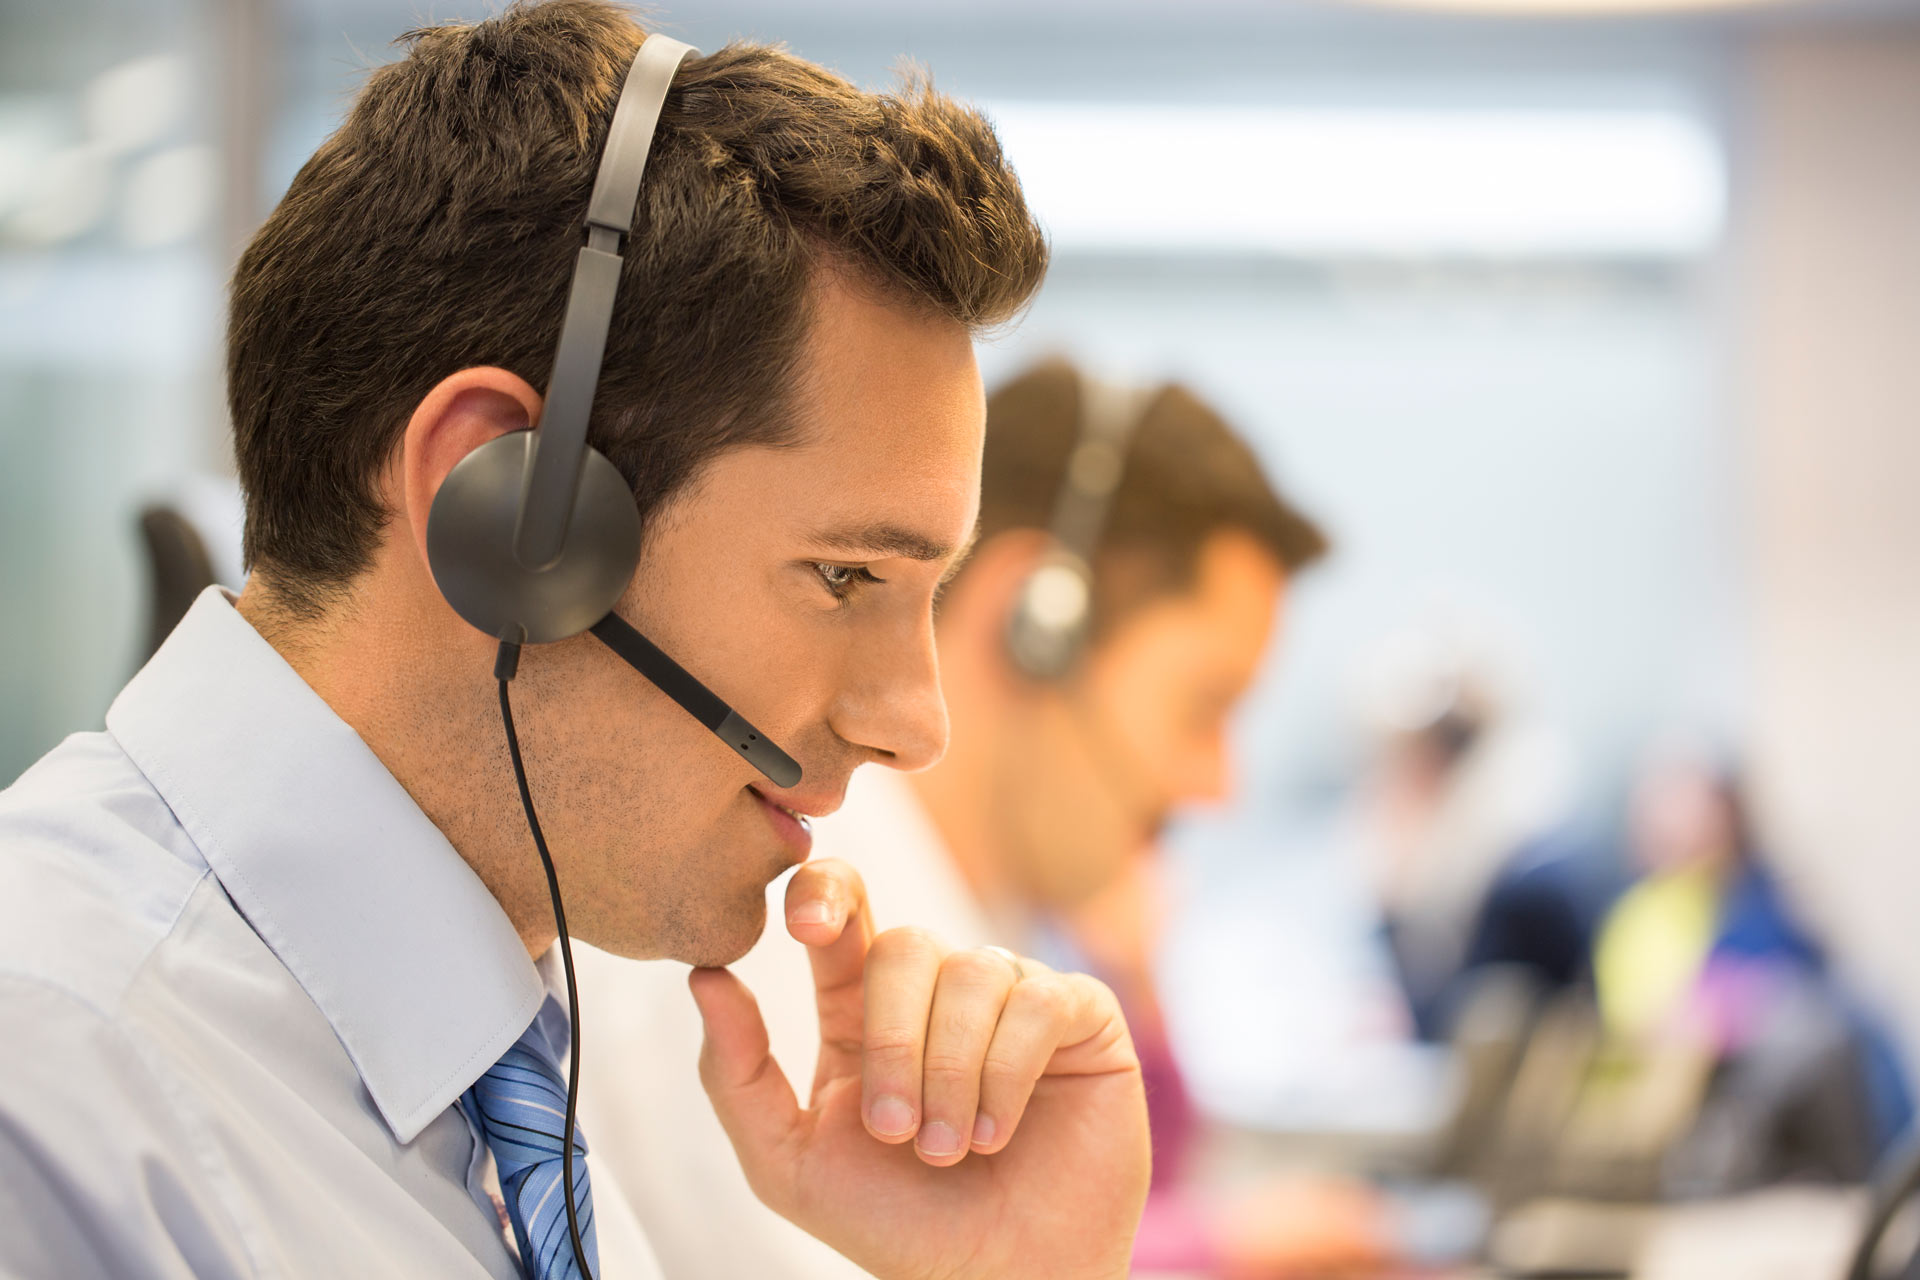 businessman with a phone headset on, sitting in an open floor plan office